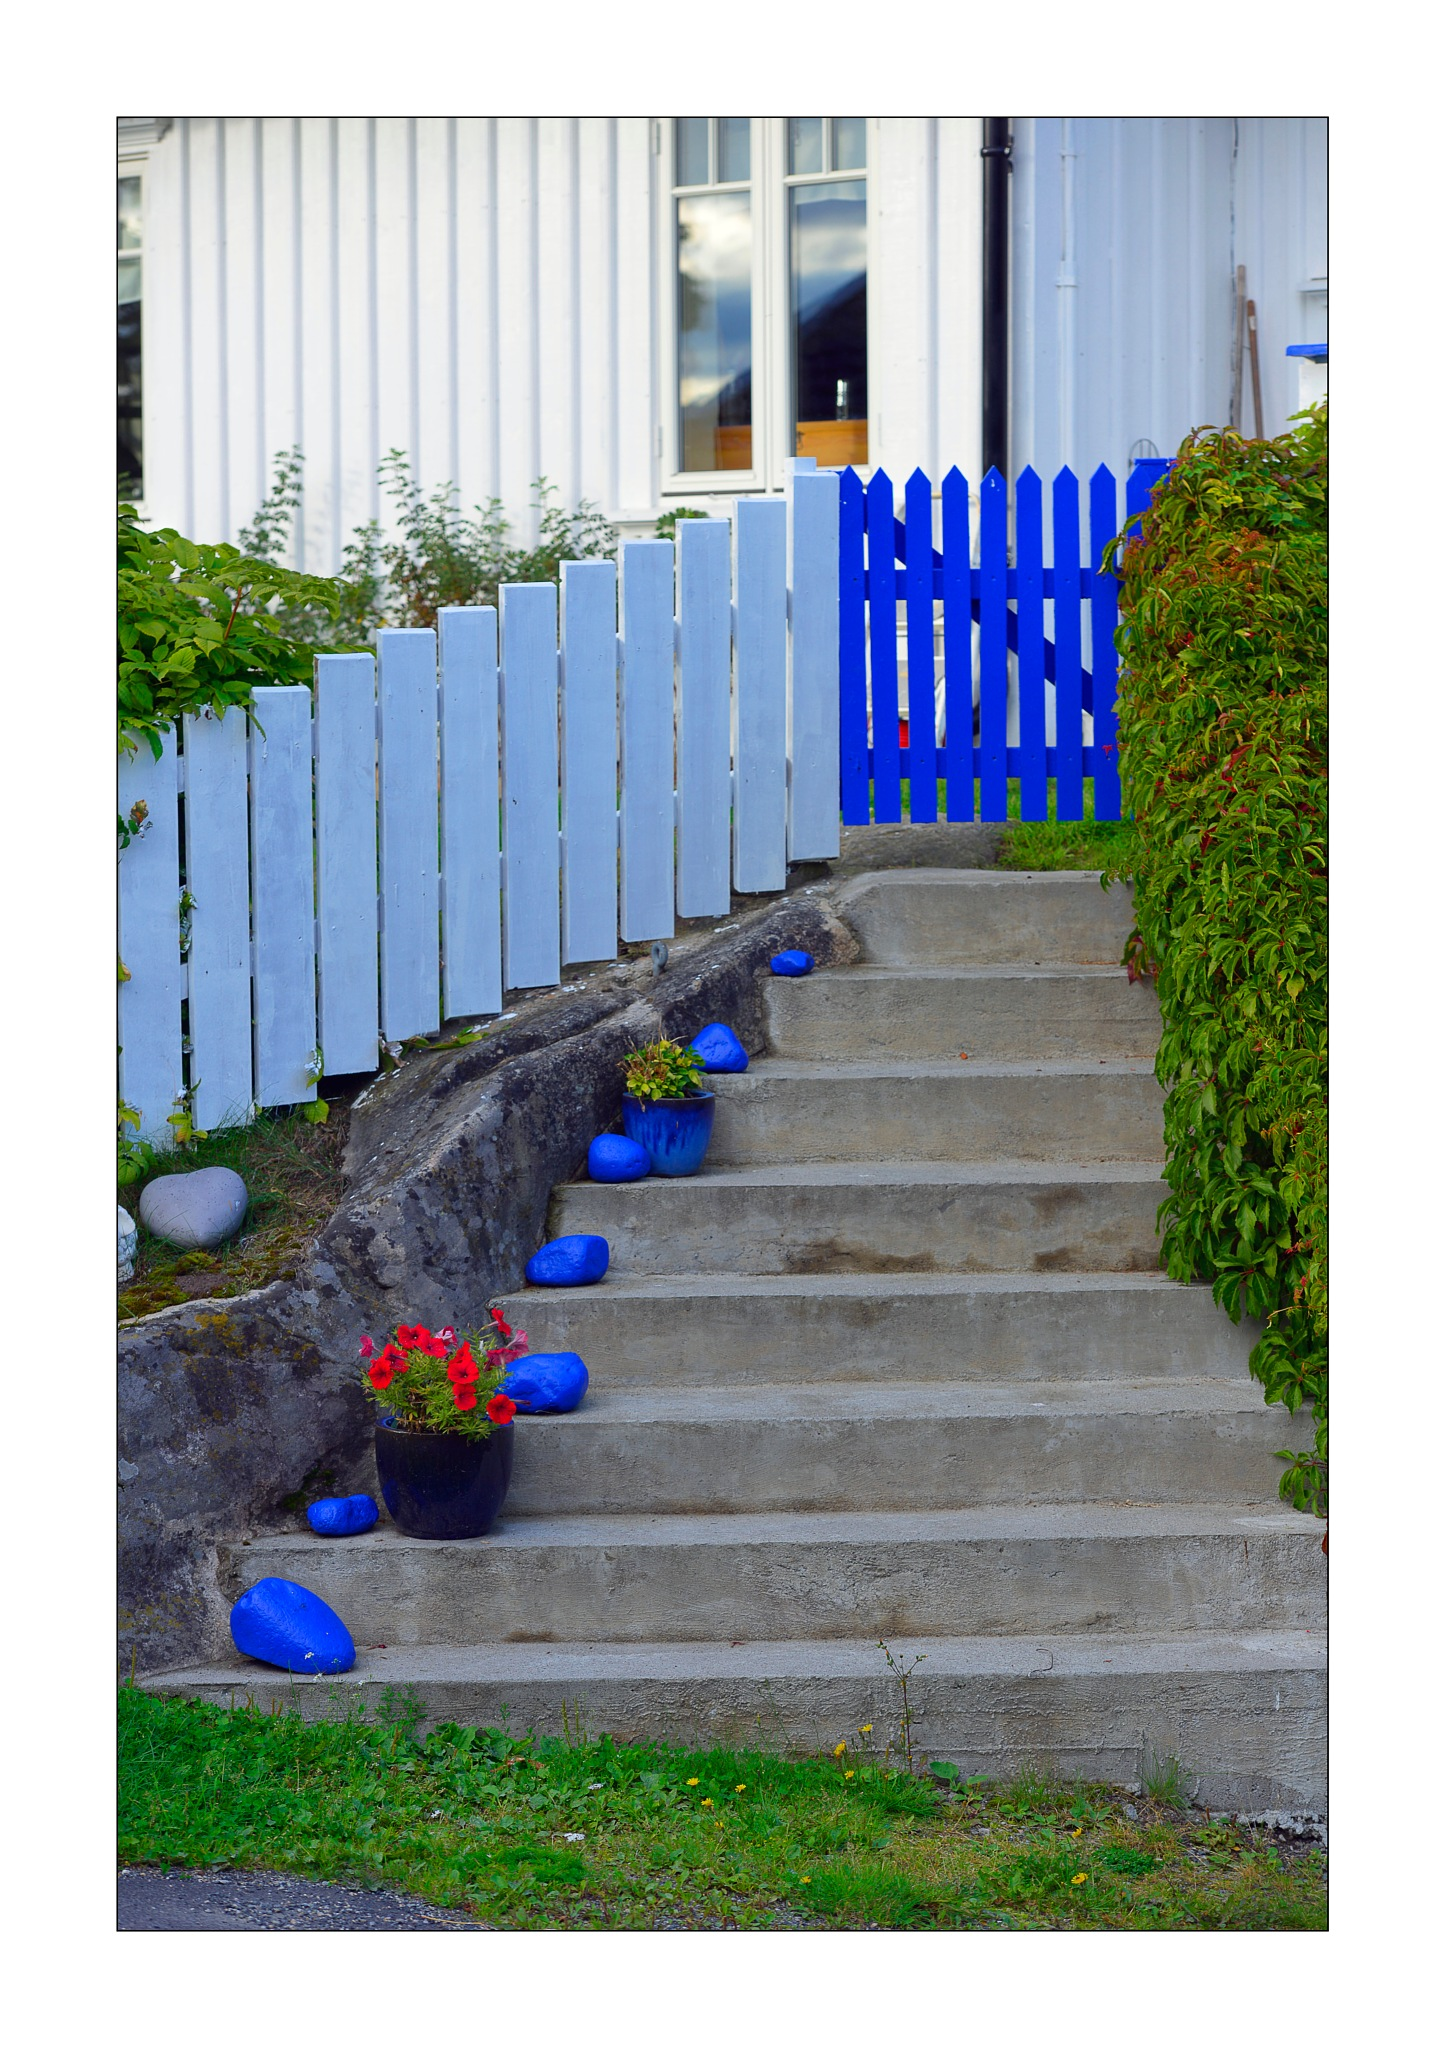 Stairs with Blue Stones by Goran Jorganovich